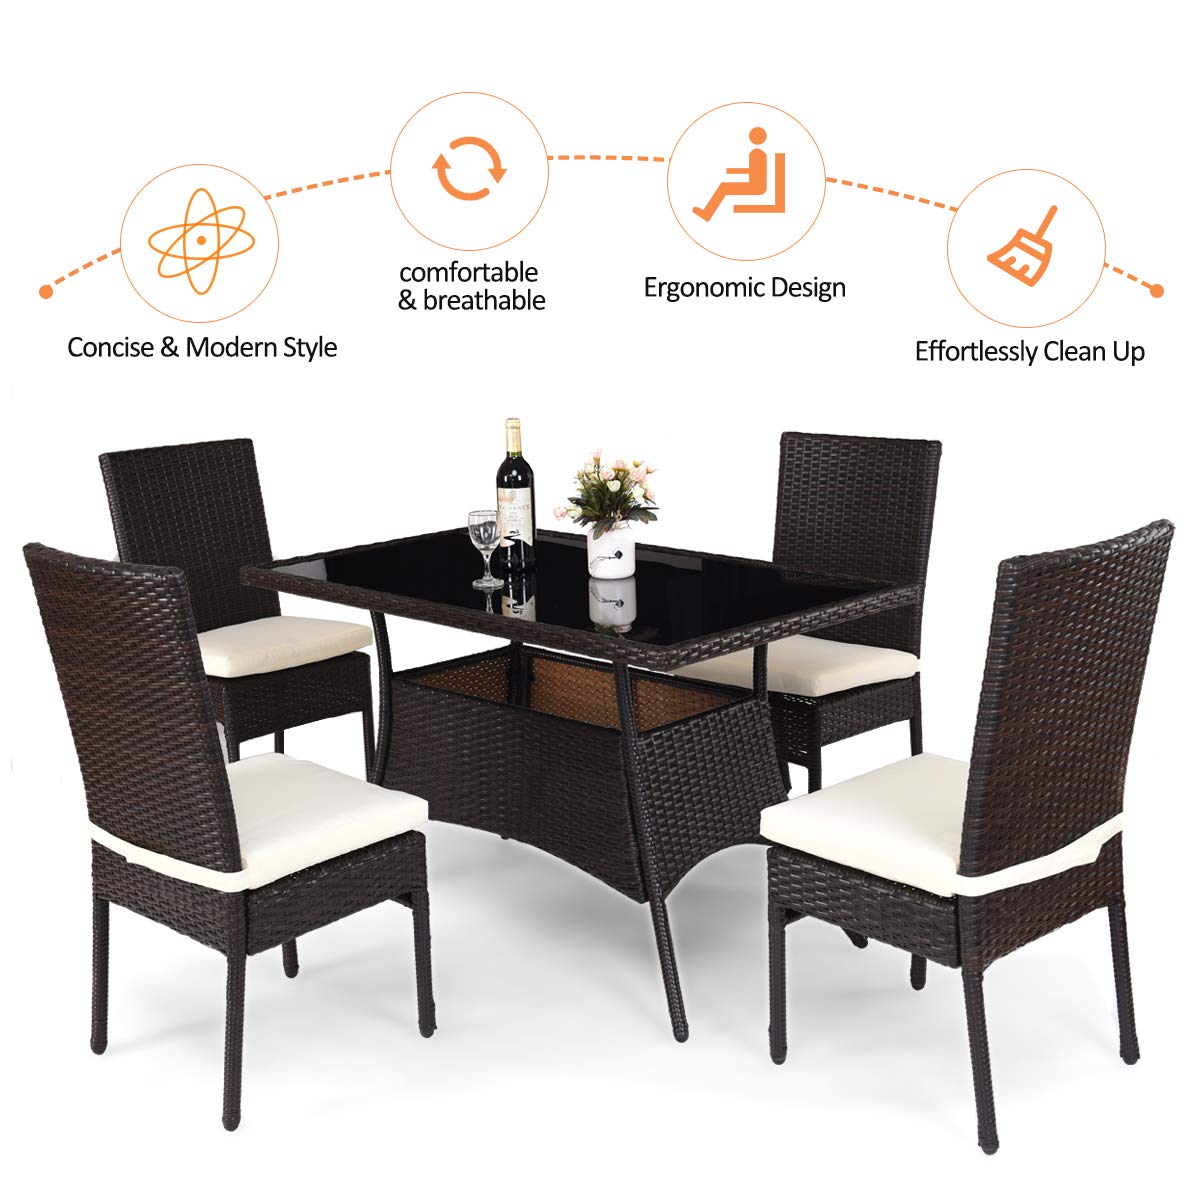 Tangkula Patio Furniture, 5 PCS All Weather Resistant Heavy Duty Wicker Dining Set with Chairs, Perfect for Balcony Patio Garden Poolside, 5 Piece Wicker Table and Chairs Set by Tangkula (Image #7)